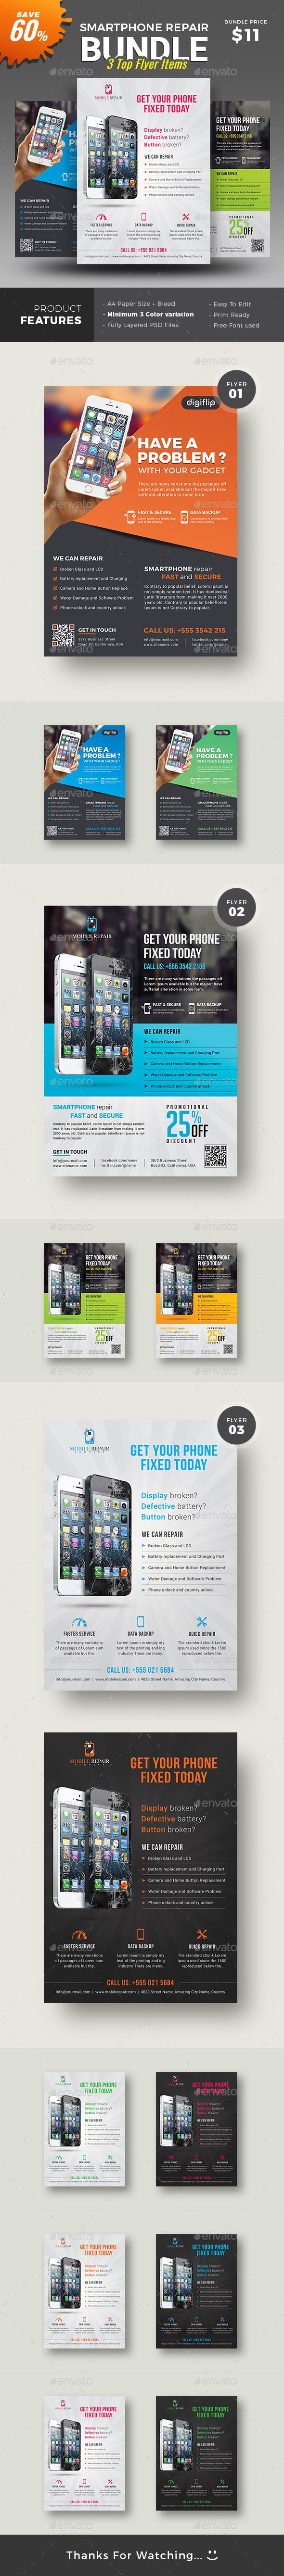 Smartphone Repair Service Flyer   Smartphone, Flyer template and ...